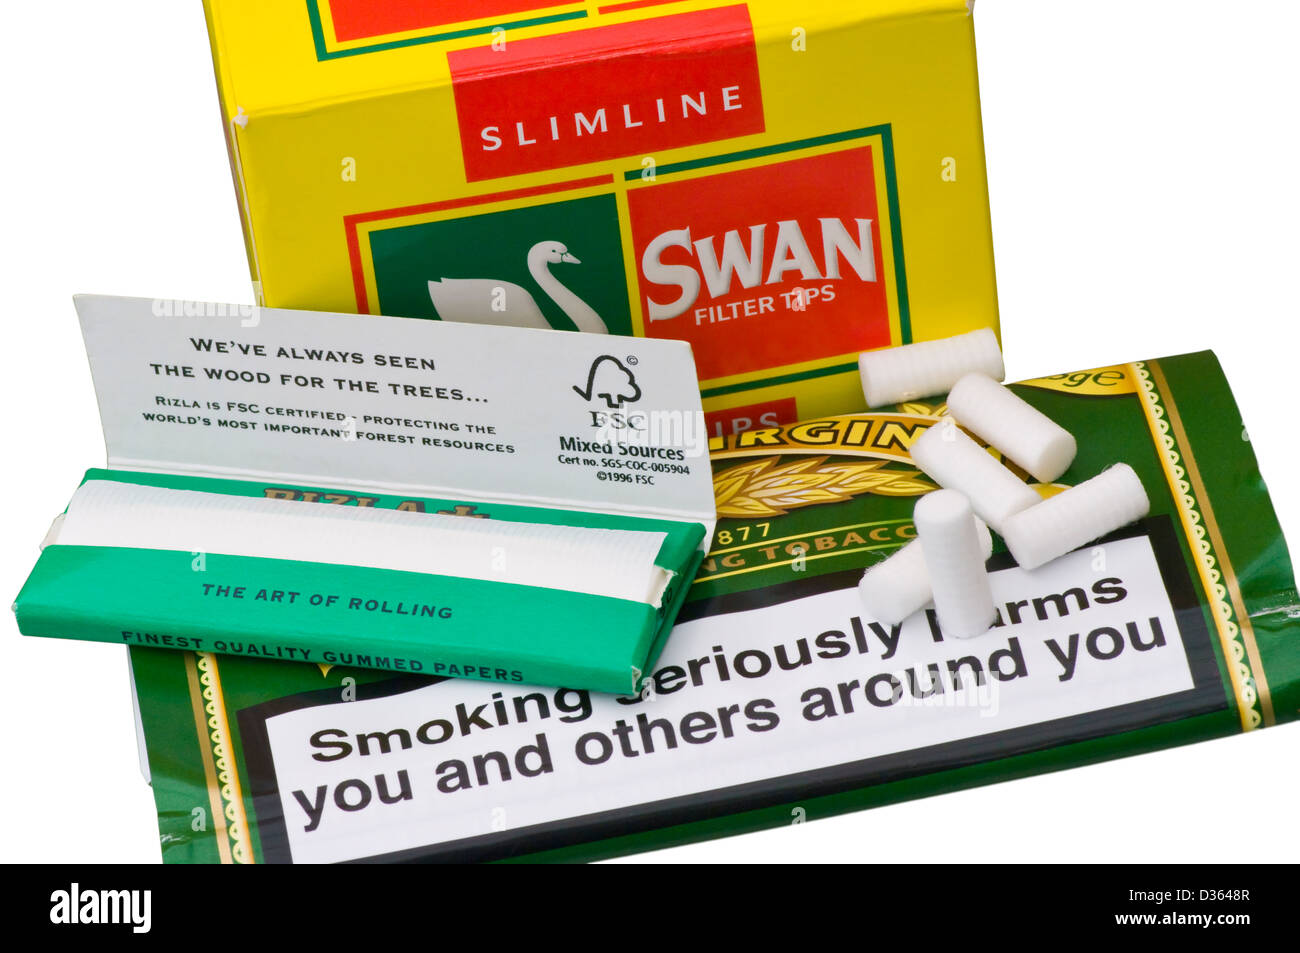 What is the lightest menthol cigarette in Utah